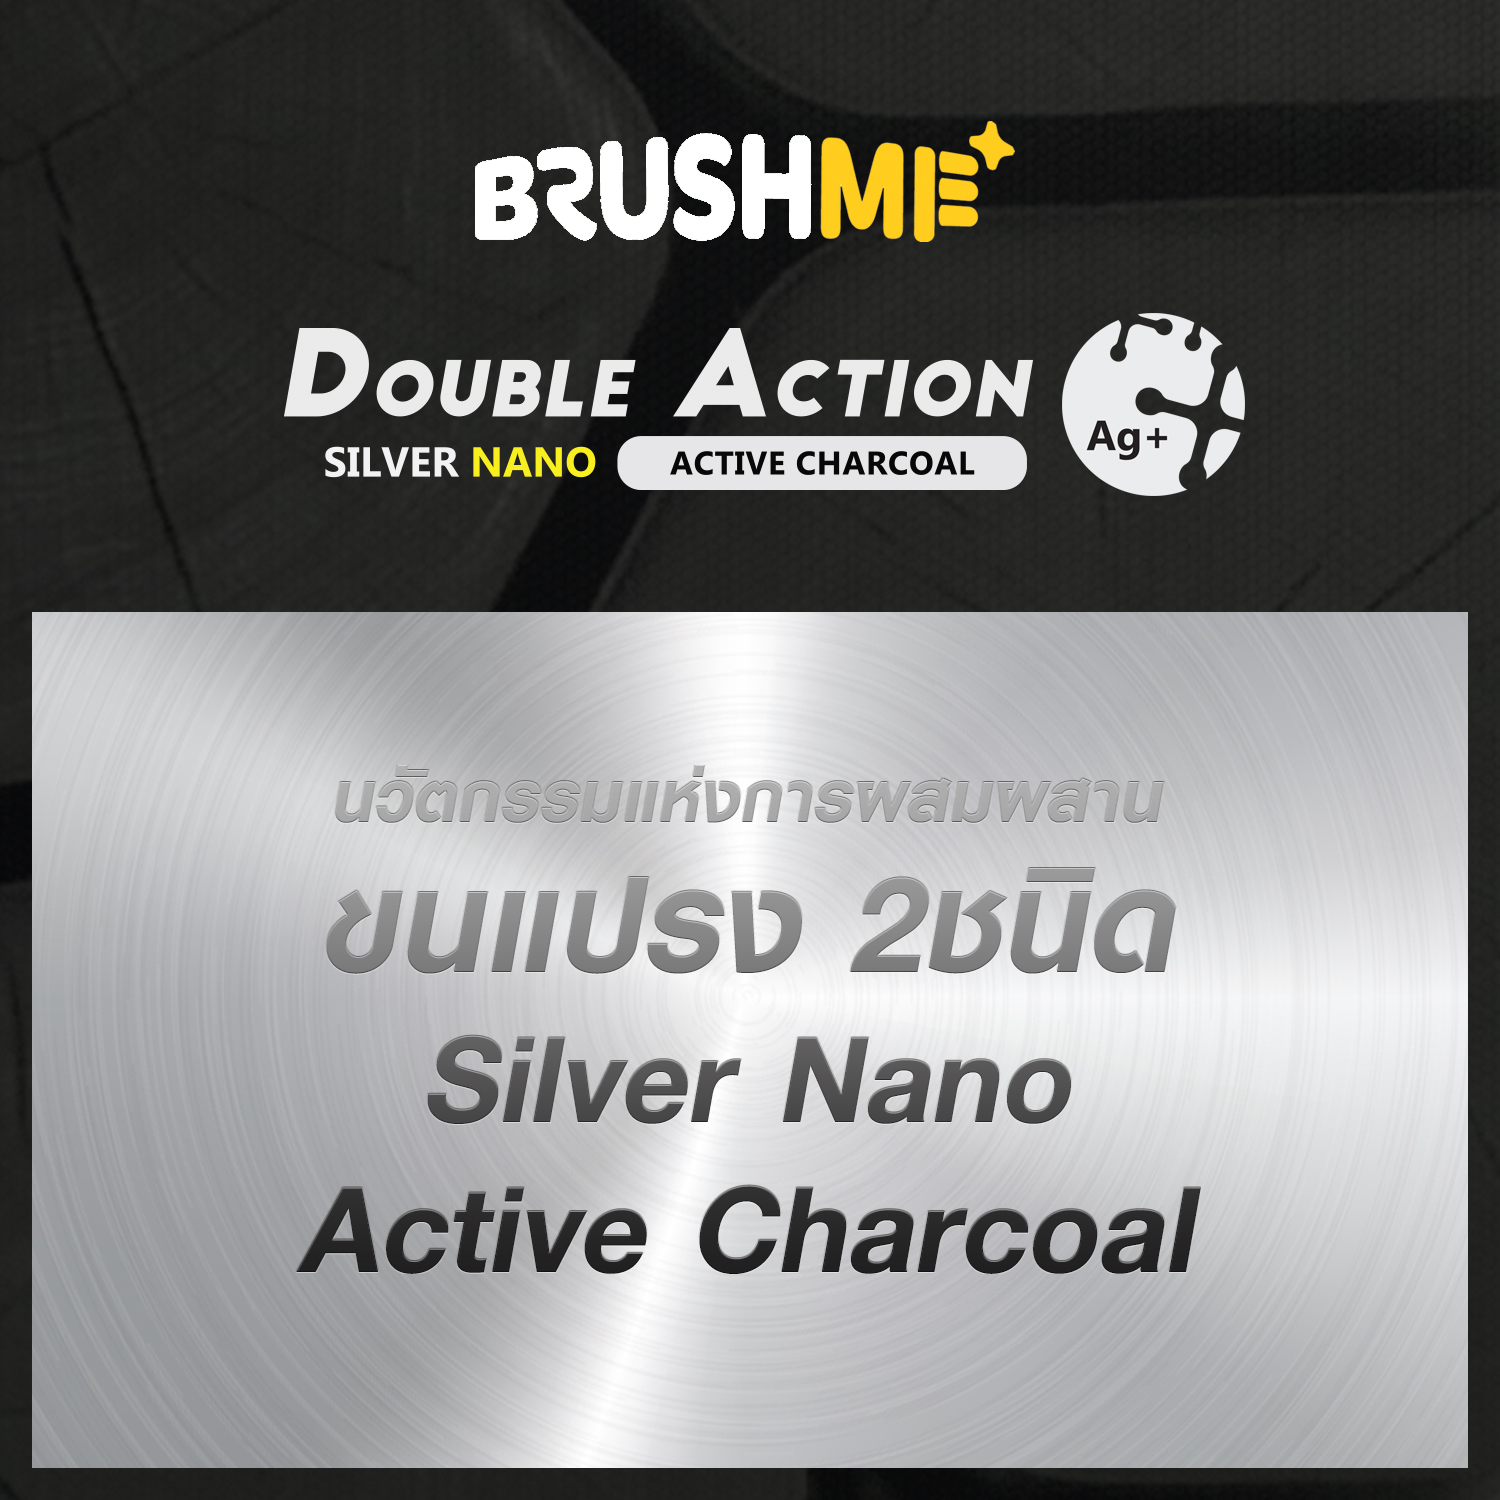 Double Action_by BrushMe_00